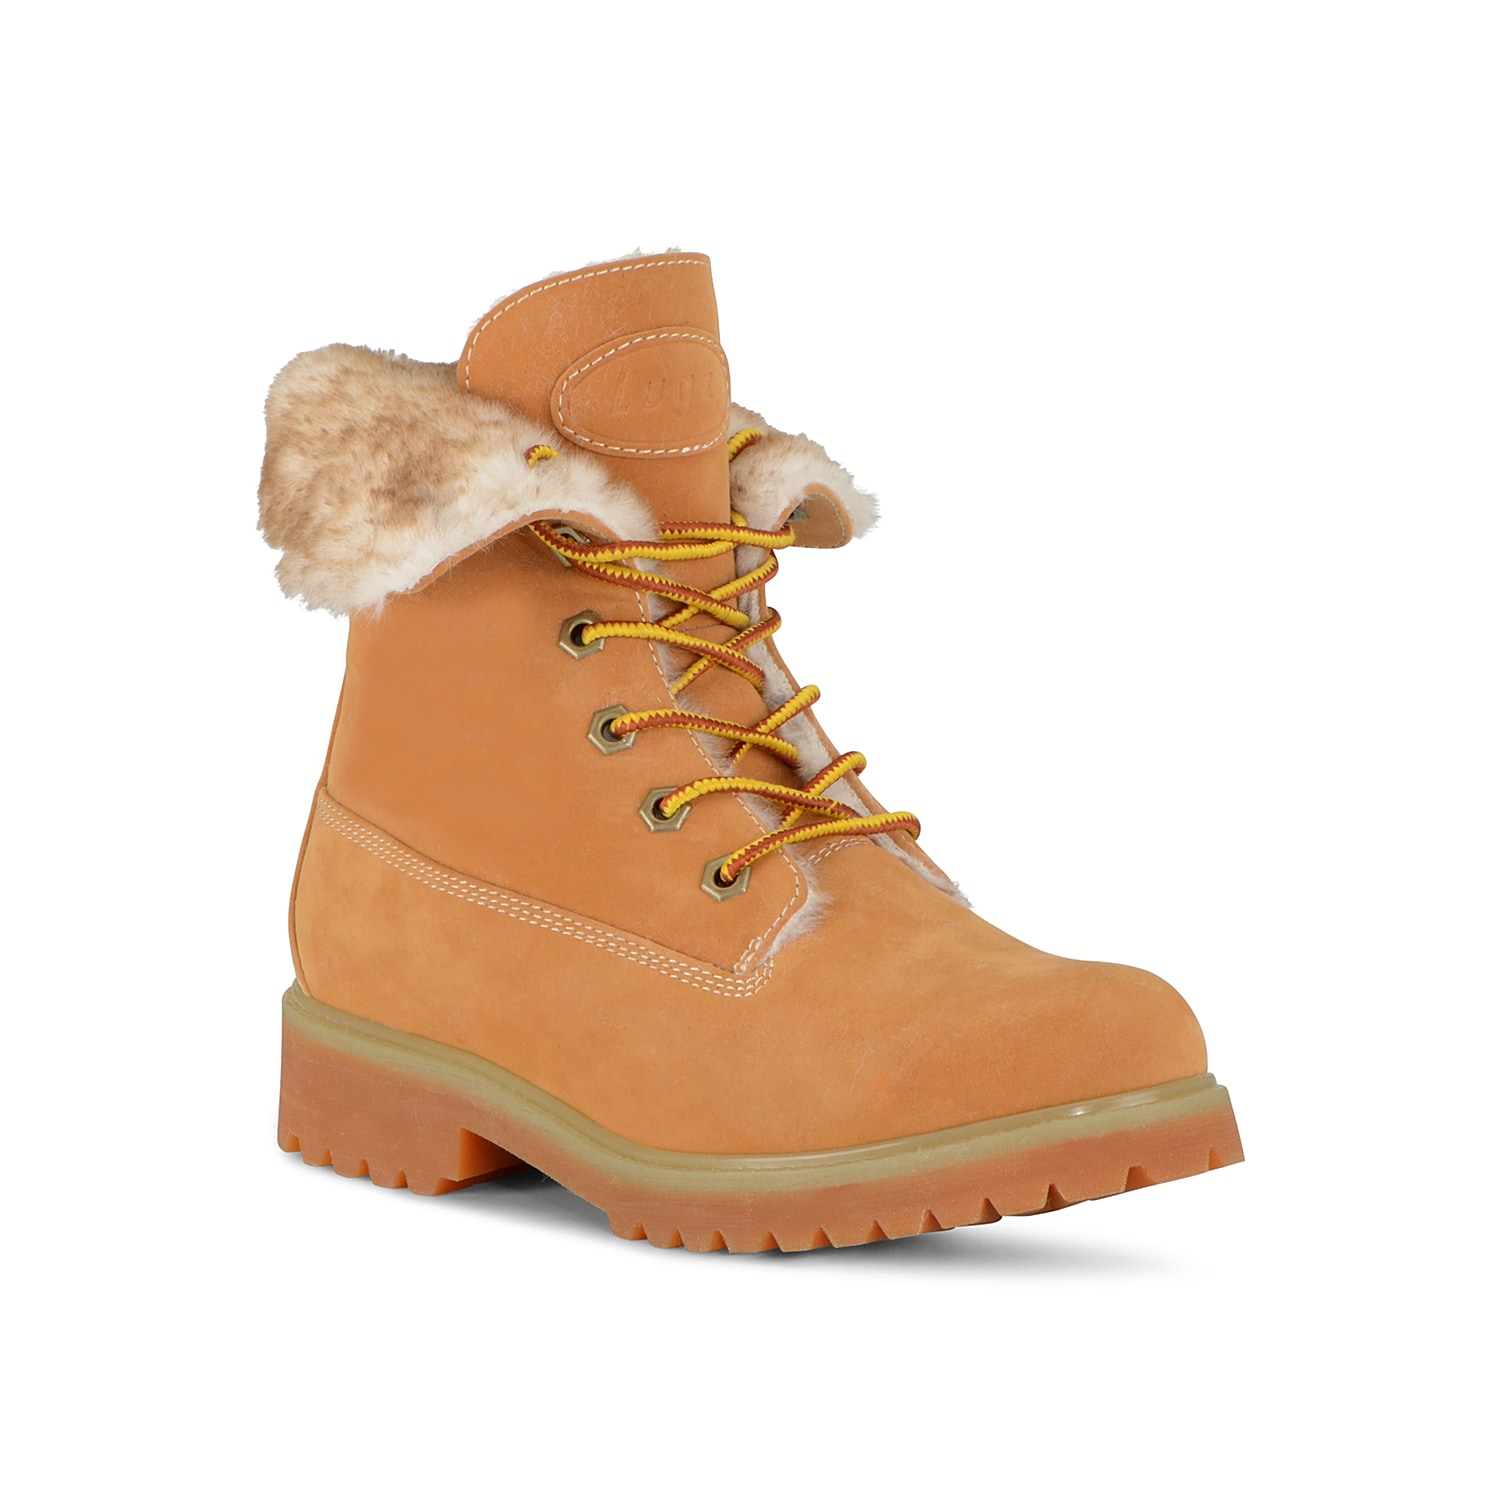 Amp up your cold-weather street style with the Convoy Fold boot from Lugz. This lace-up pair features a faux fur collar and easily pairs with your rotating wardrobe! Click here for Boot Measuring Guide.